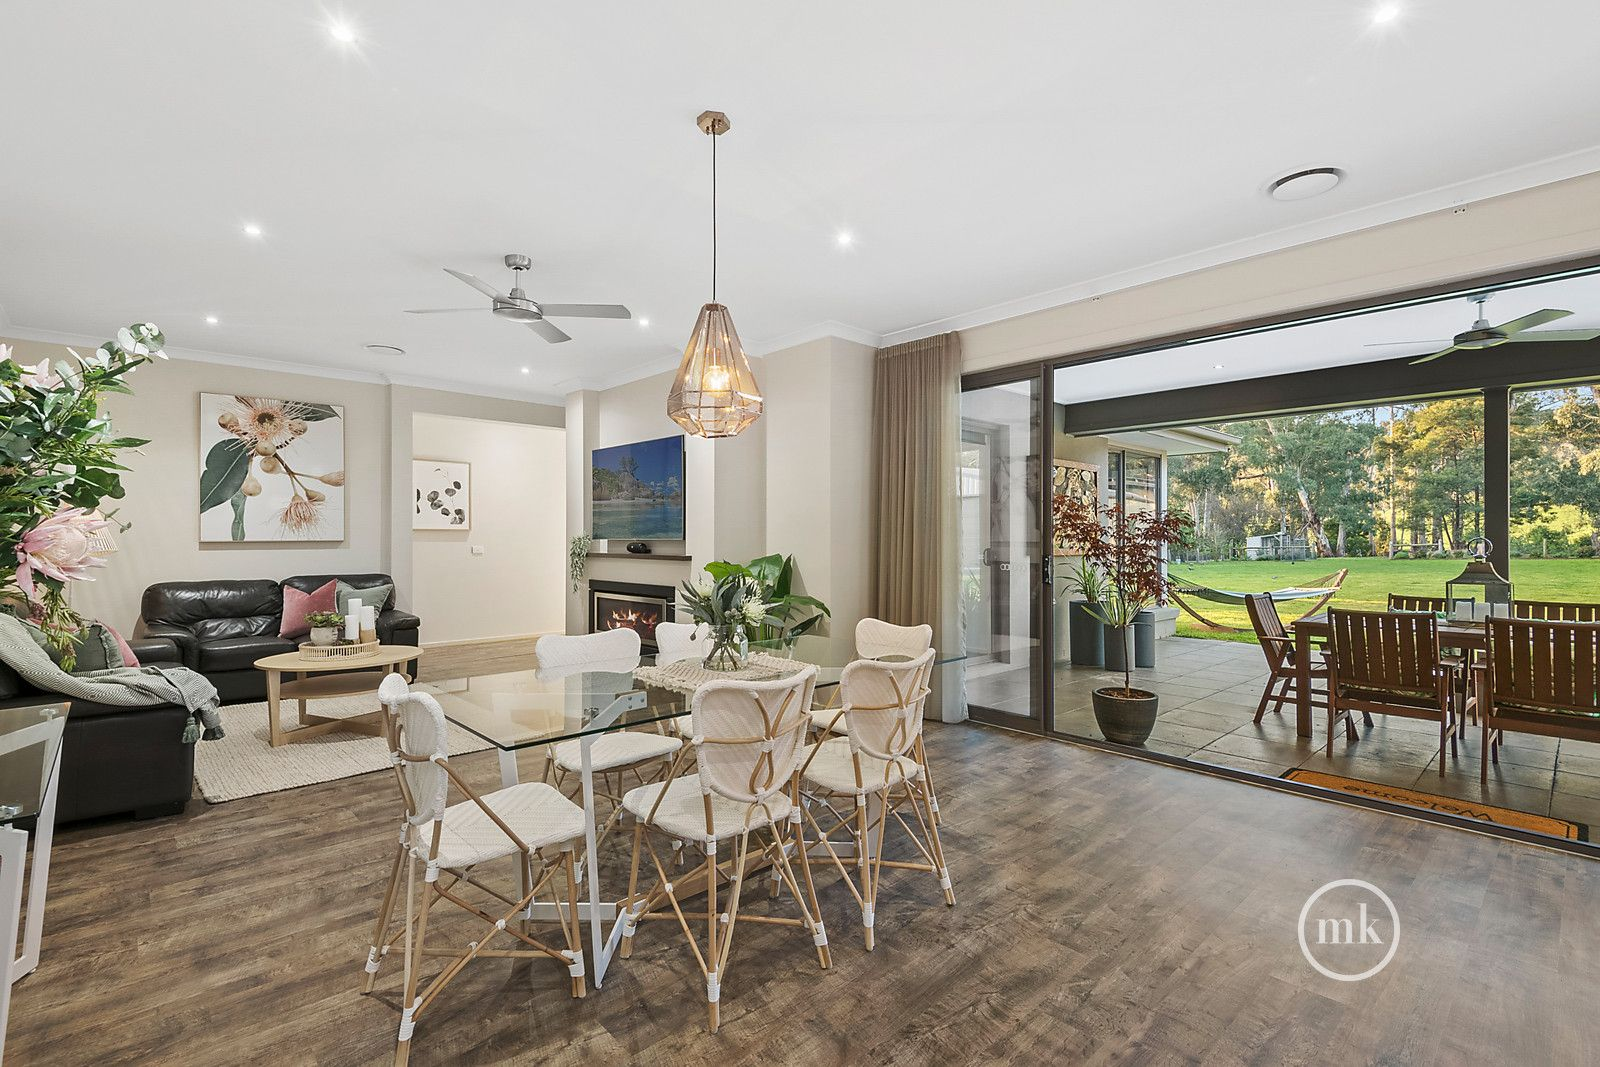 185 Humevale Road, Whittlesea VIC 3757, Image 2